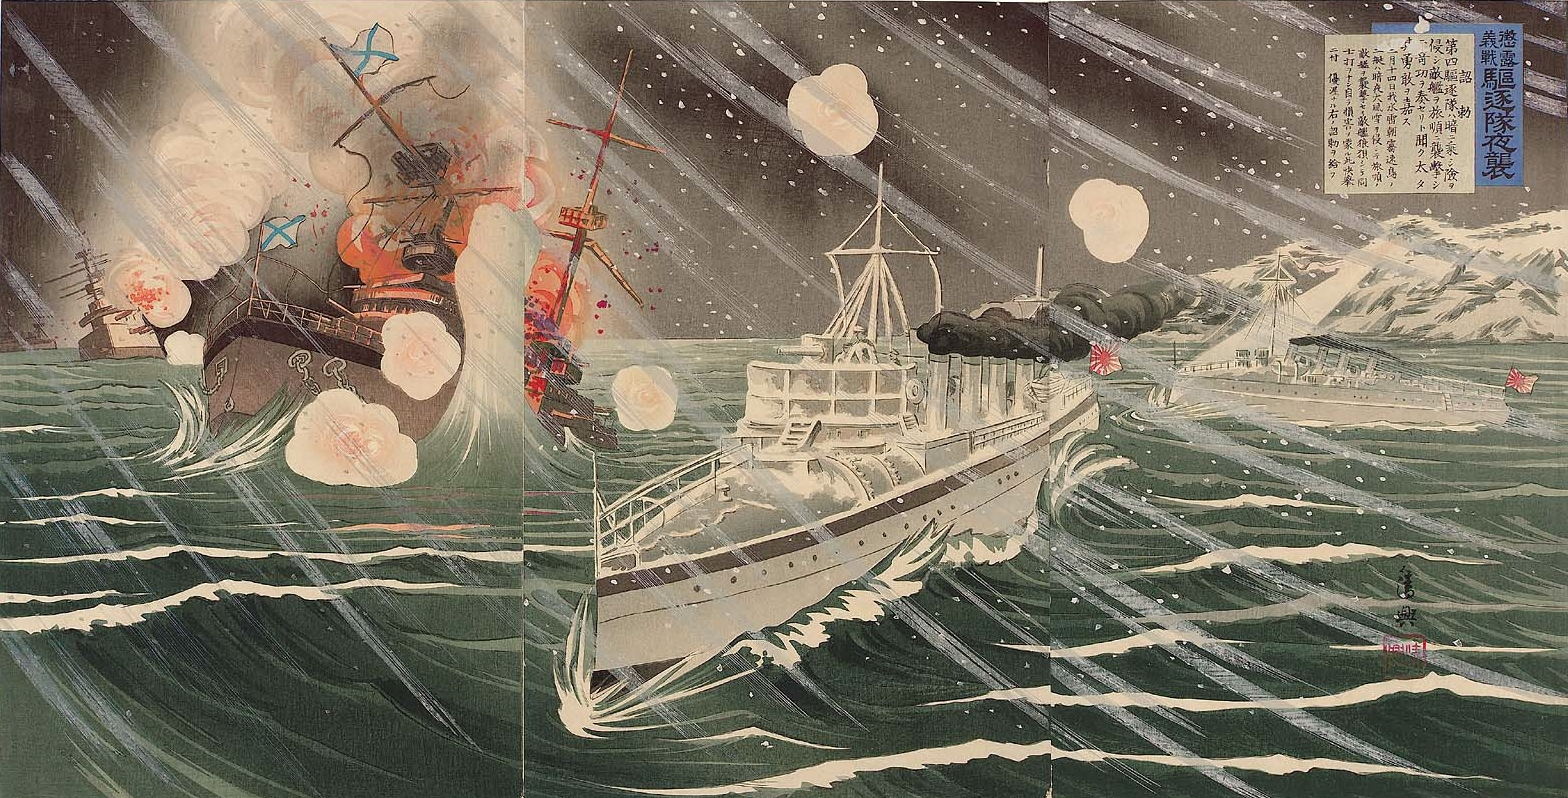 Port Arthur (Most likely the Battle of Port Arthur) during the Russo-Japanese War. The image depicts a Japanese ship sinking a Russian ship.